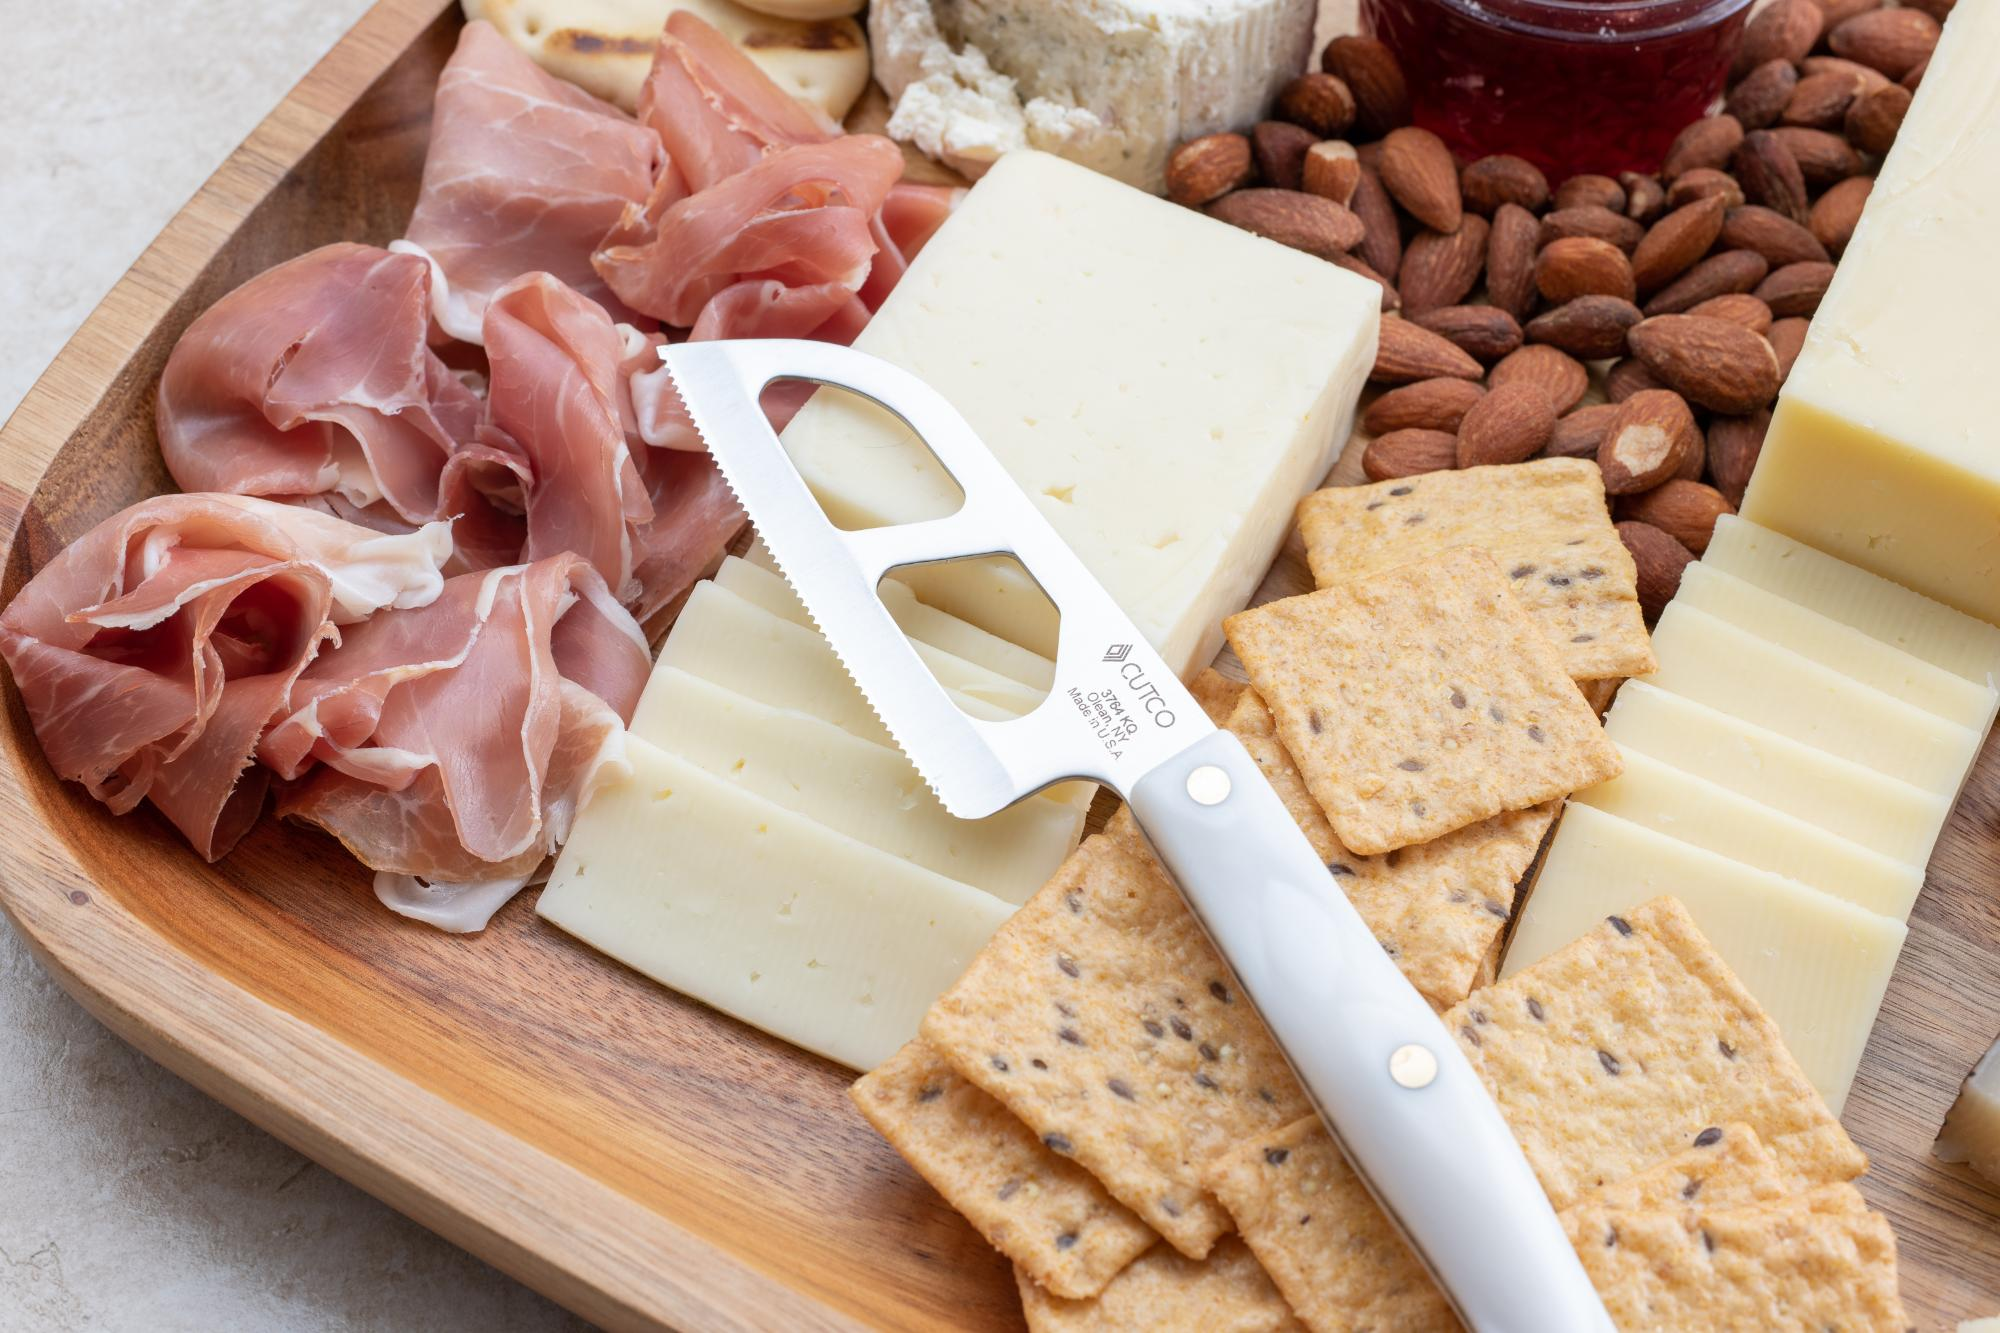 Santoku Style Cheese knife on the board.